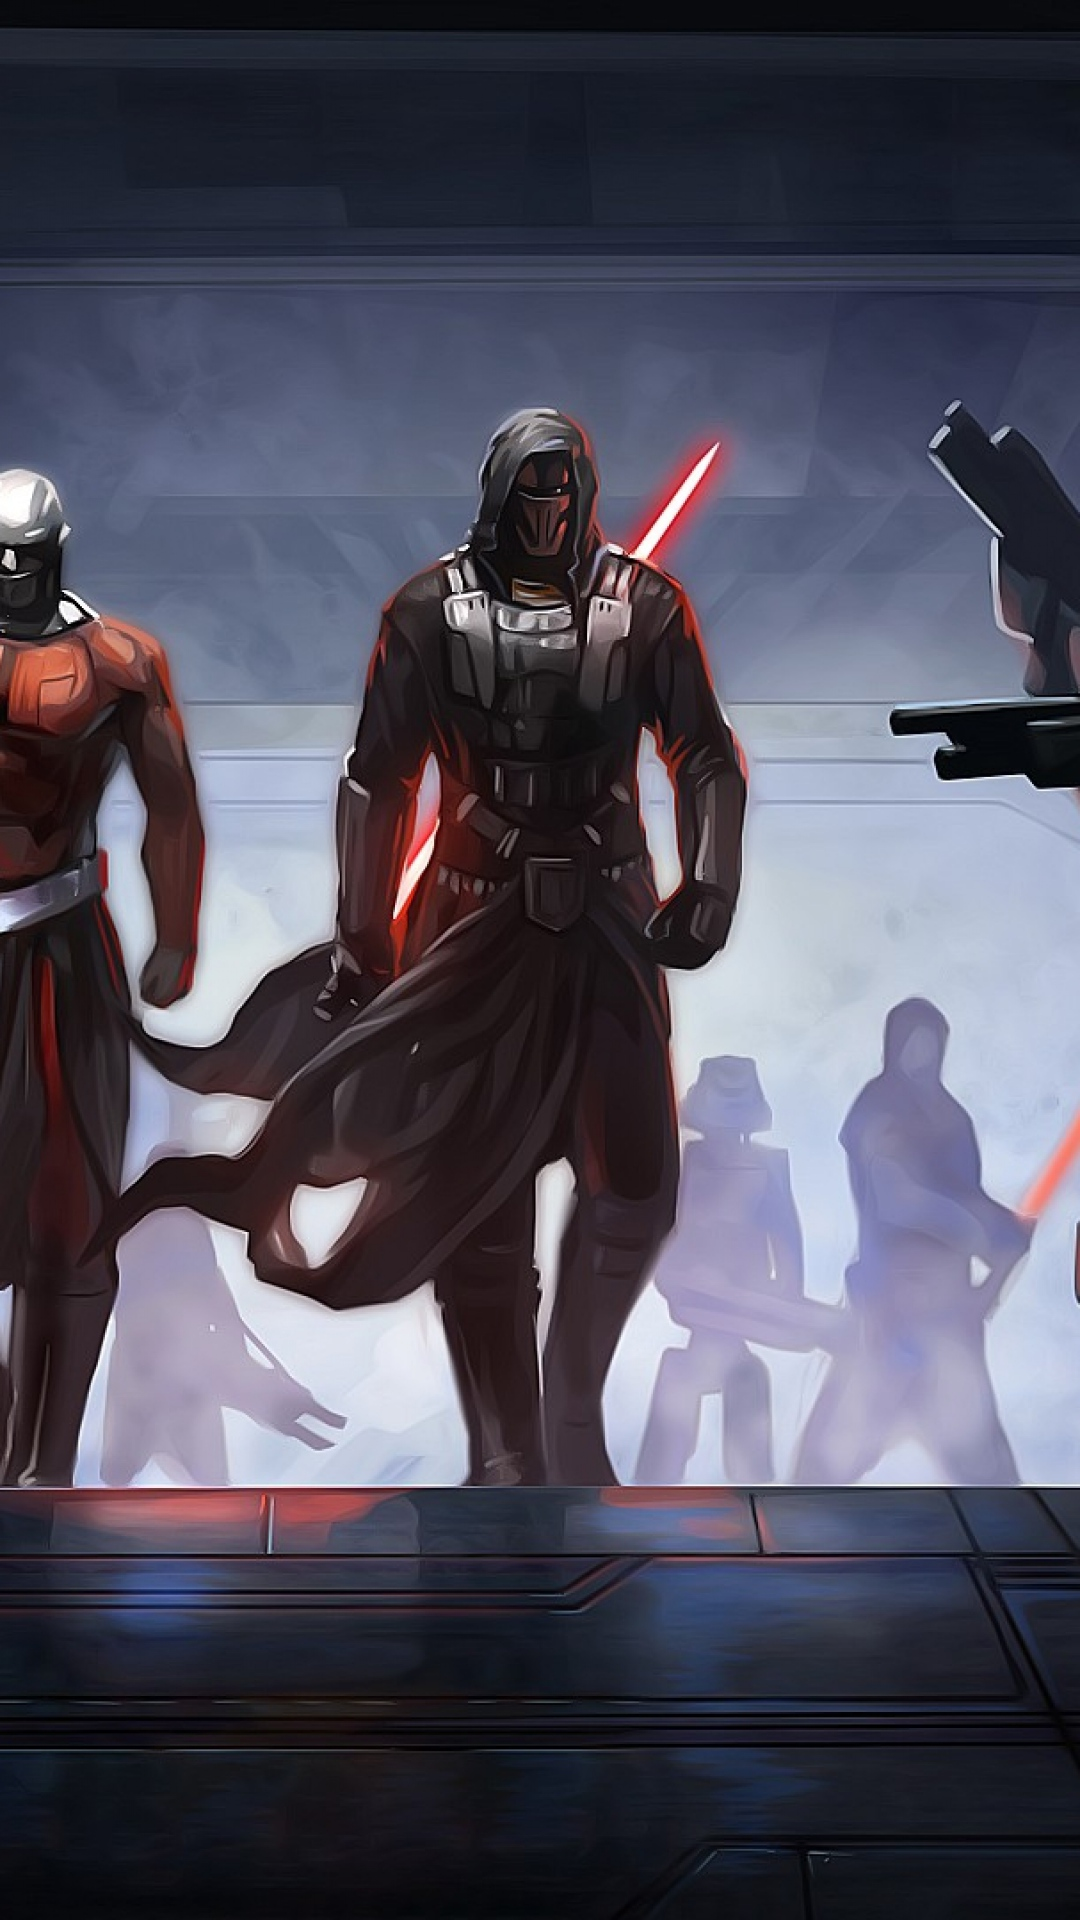 star_wars_the_old_republic_guard_characters_lightsabers_21255_1080x1920.jpg